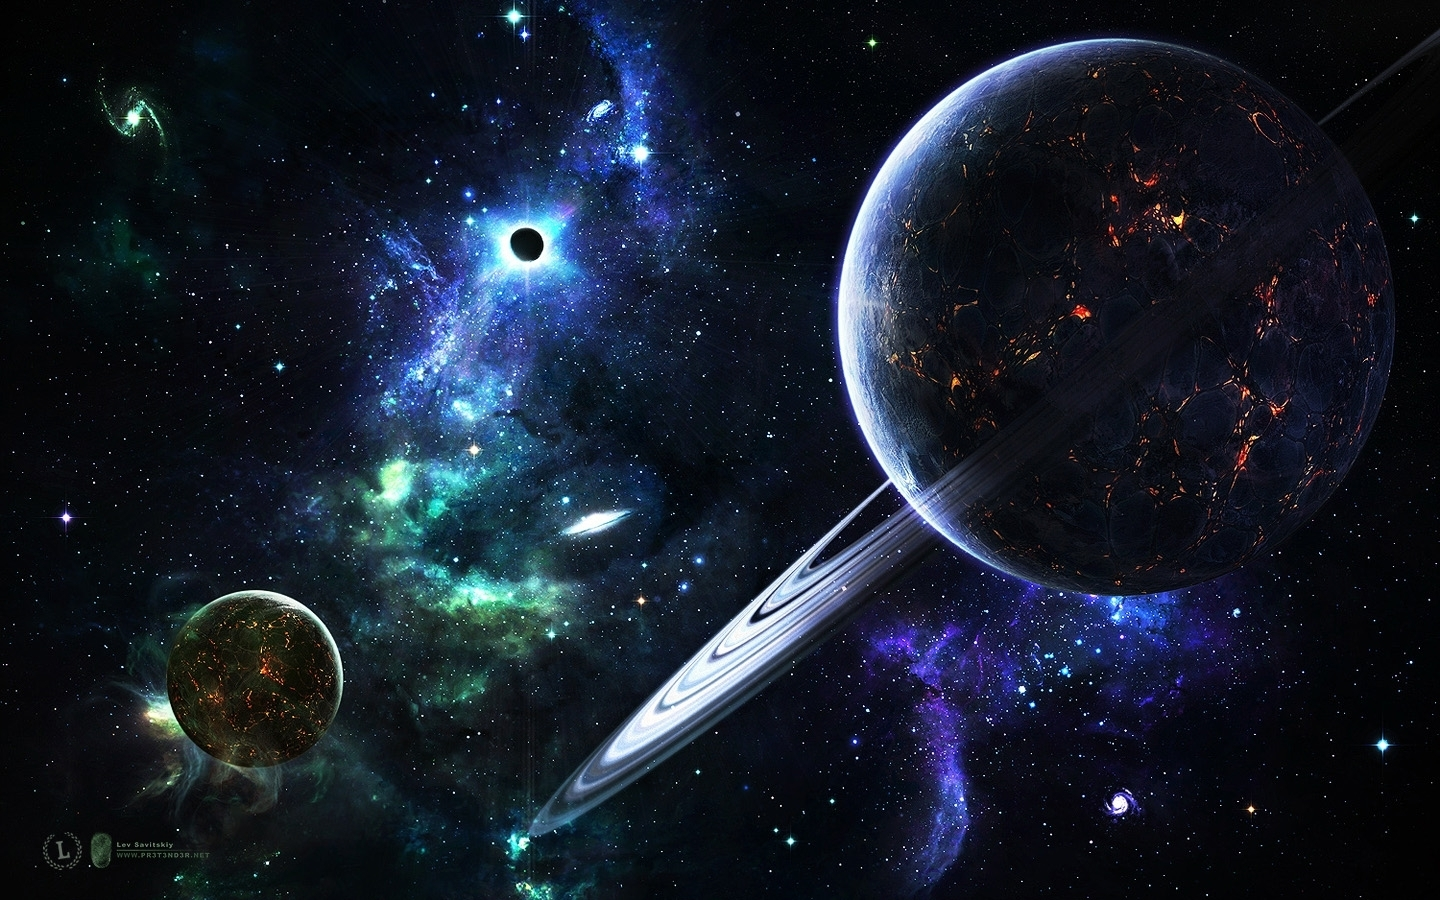 Space Art Wallpaper   Space Wallpaper 7076682 1440x900